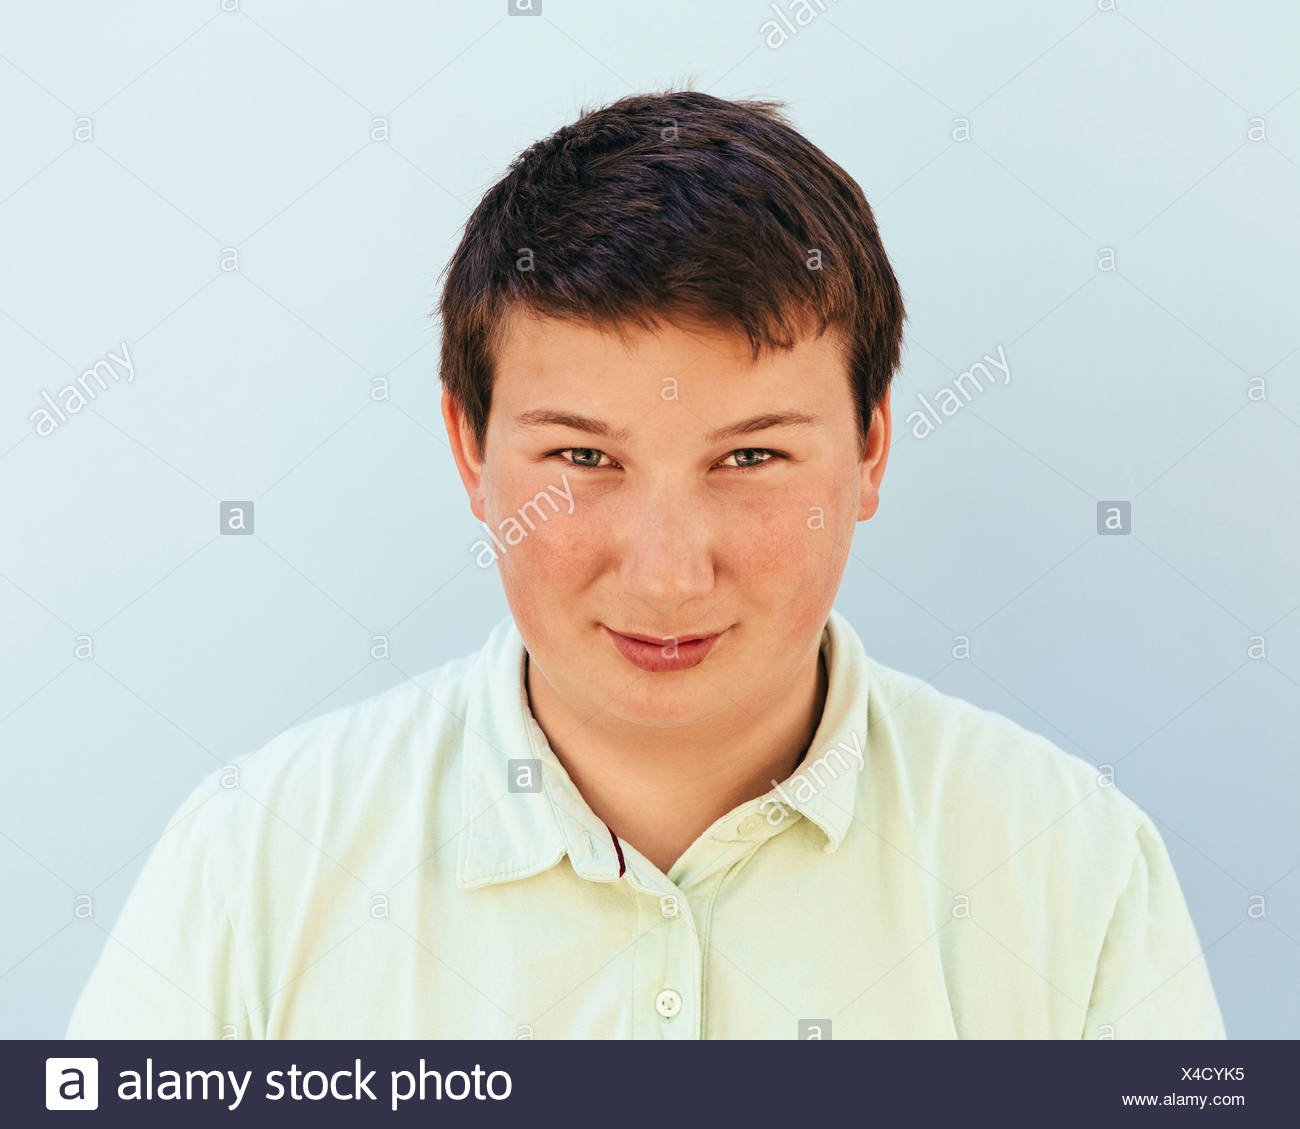 Portrait of a teenage boy with short black hair. - Stock Image